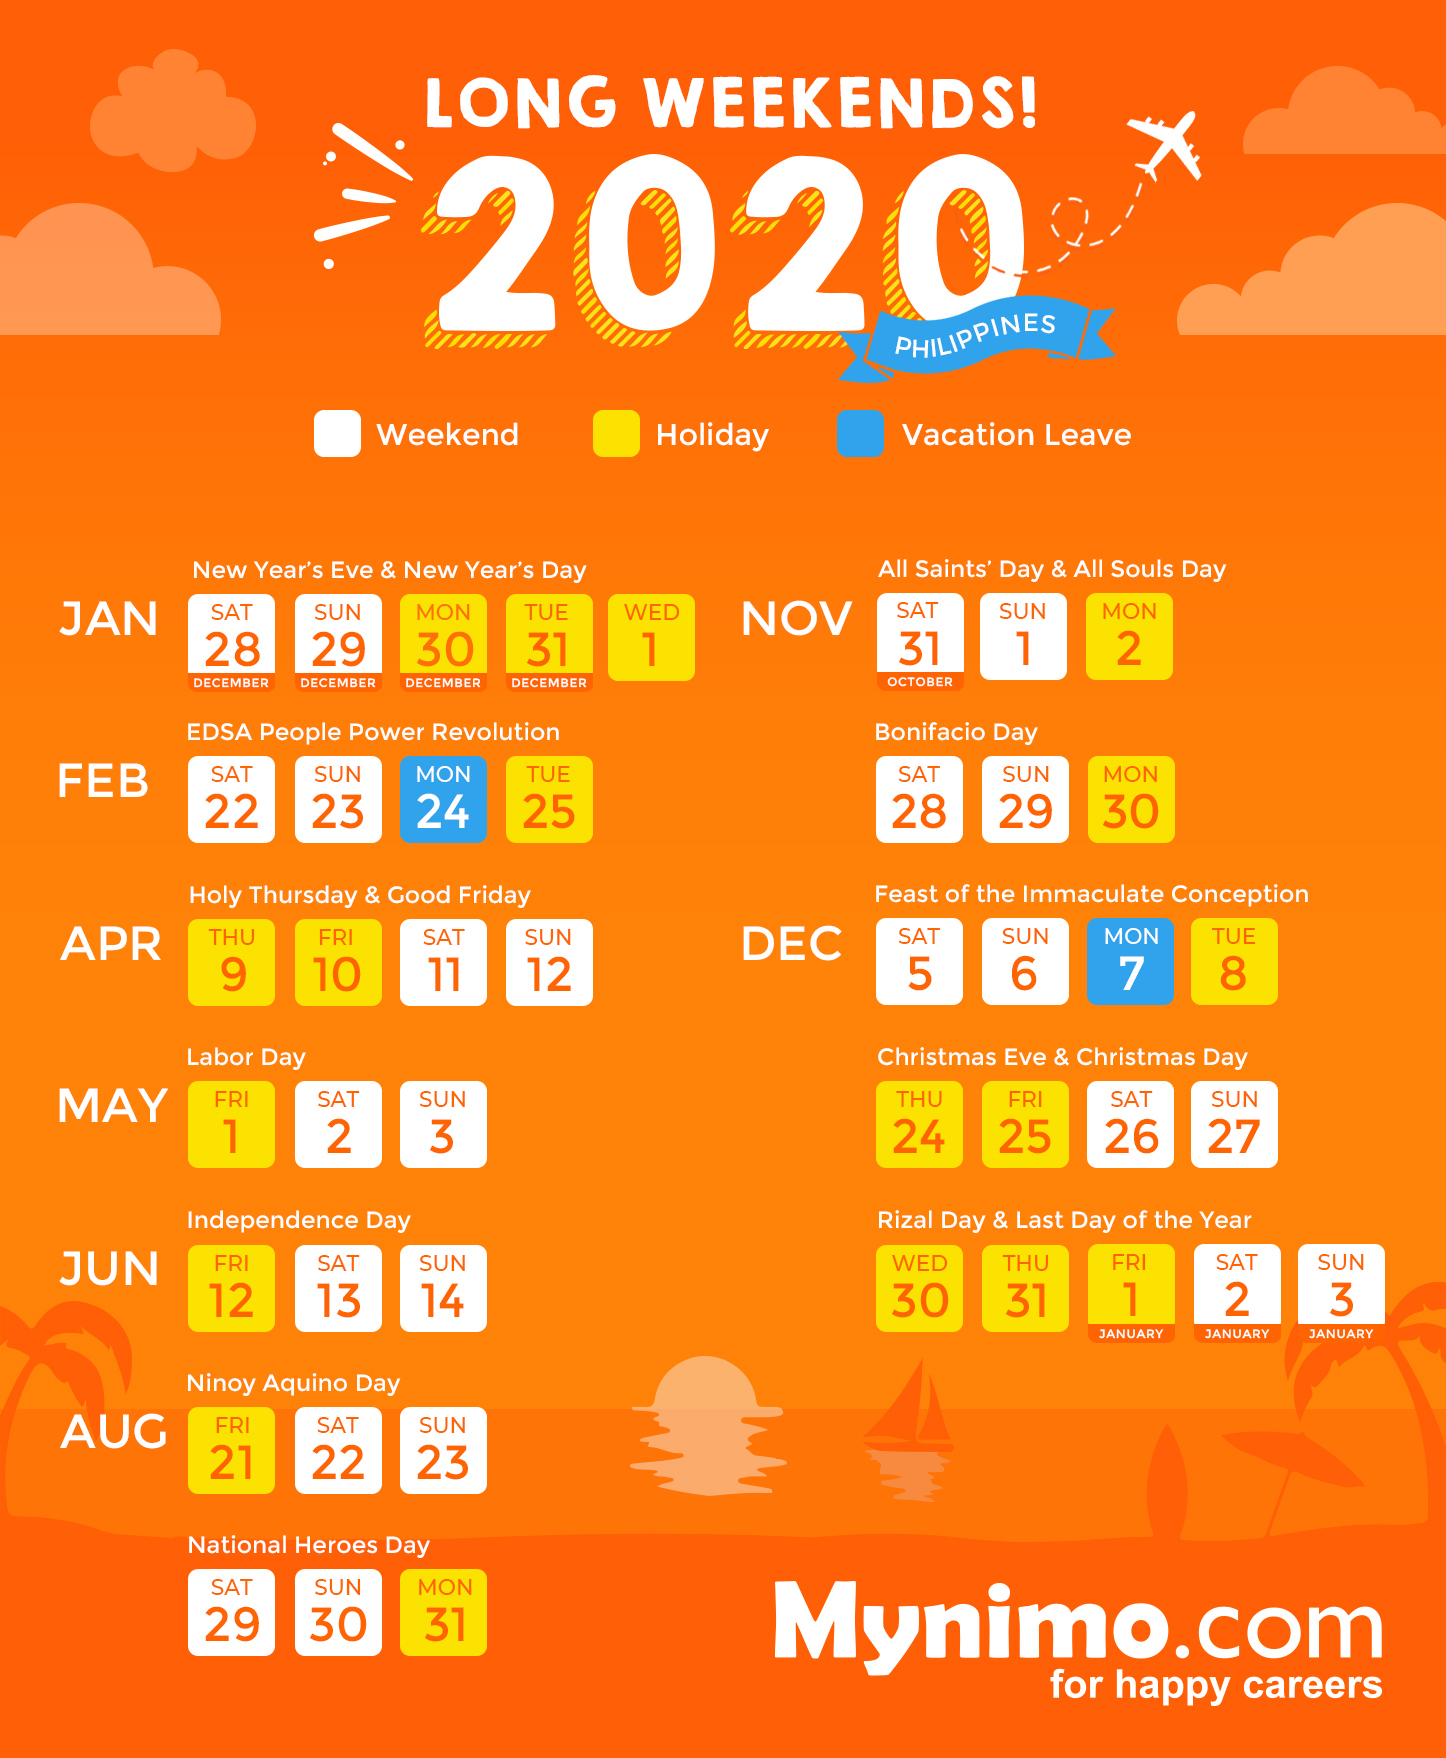 2020 Philippine Holidays and Long Weekends